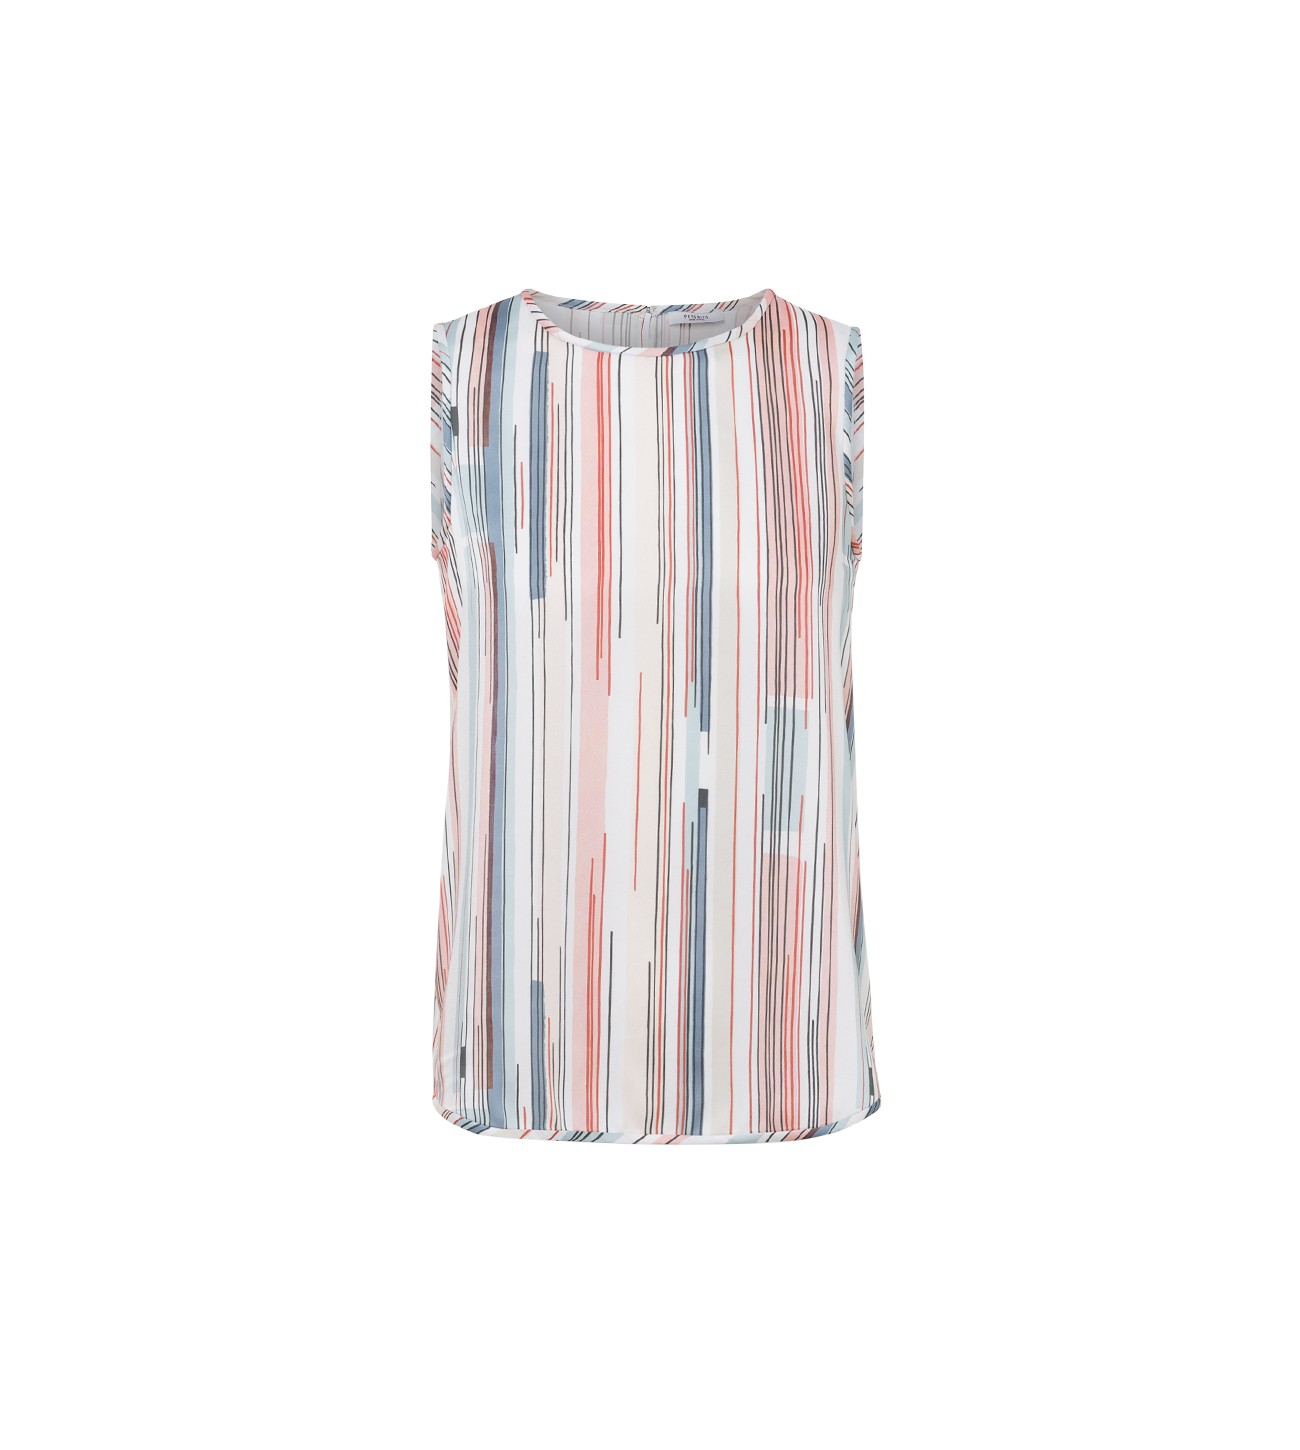 PESERICO_STRIPED_TOP_MARIONA_FASHION_CLOTHING_WOMAN_SHOP_ONLINE_S08393